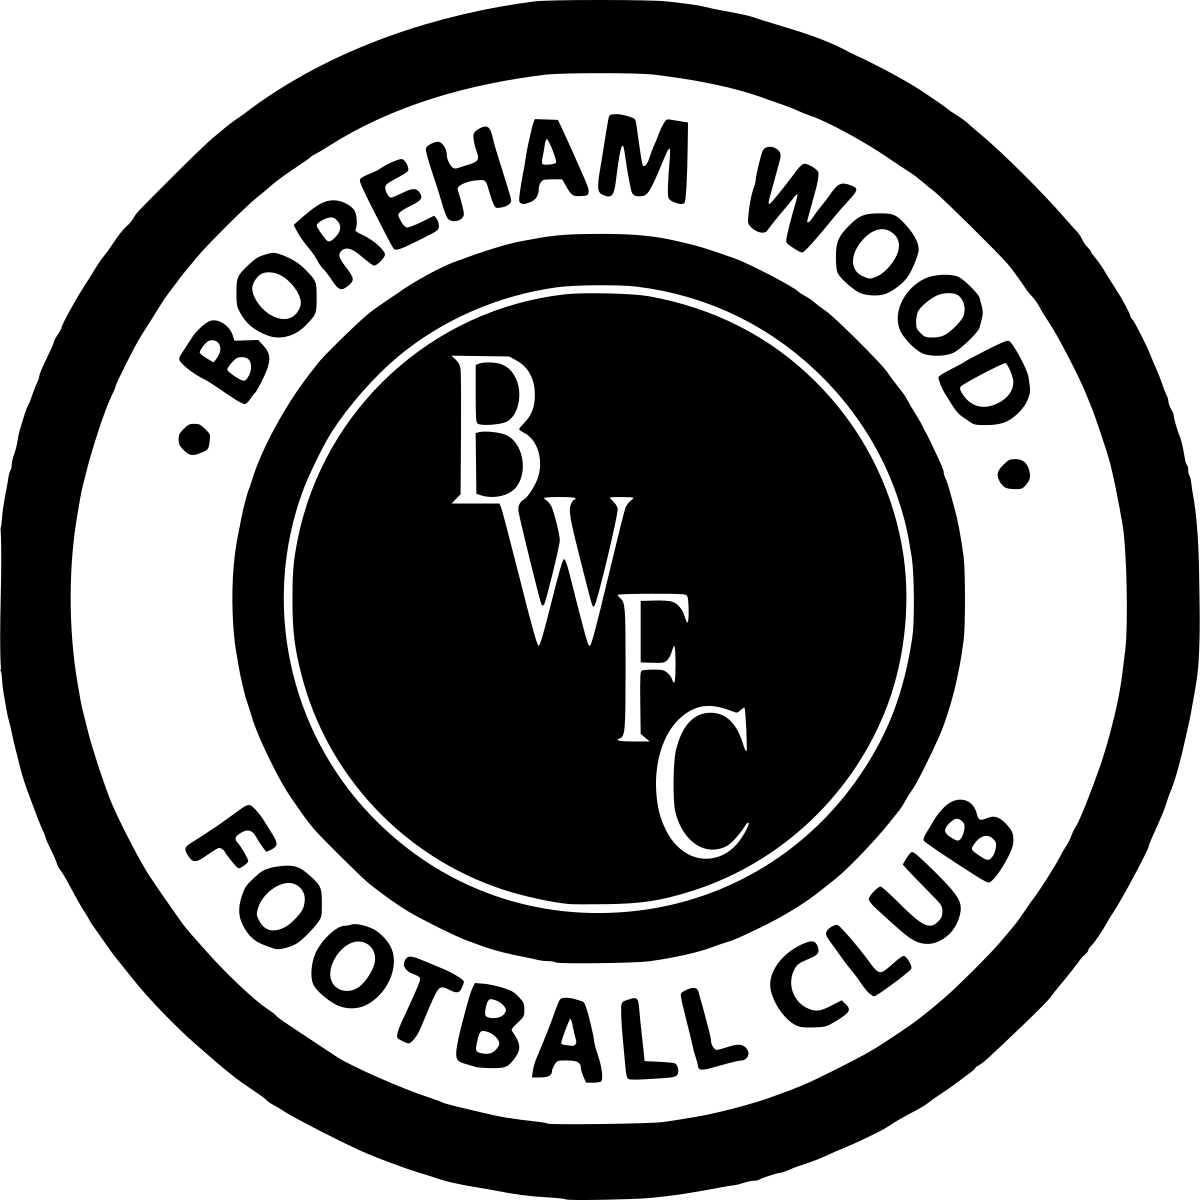 boreham wood f c vs crystal palace 31 07 2018 football ticket net American Football Logos boreham wood f c logo